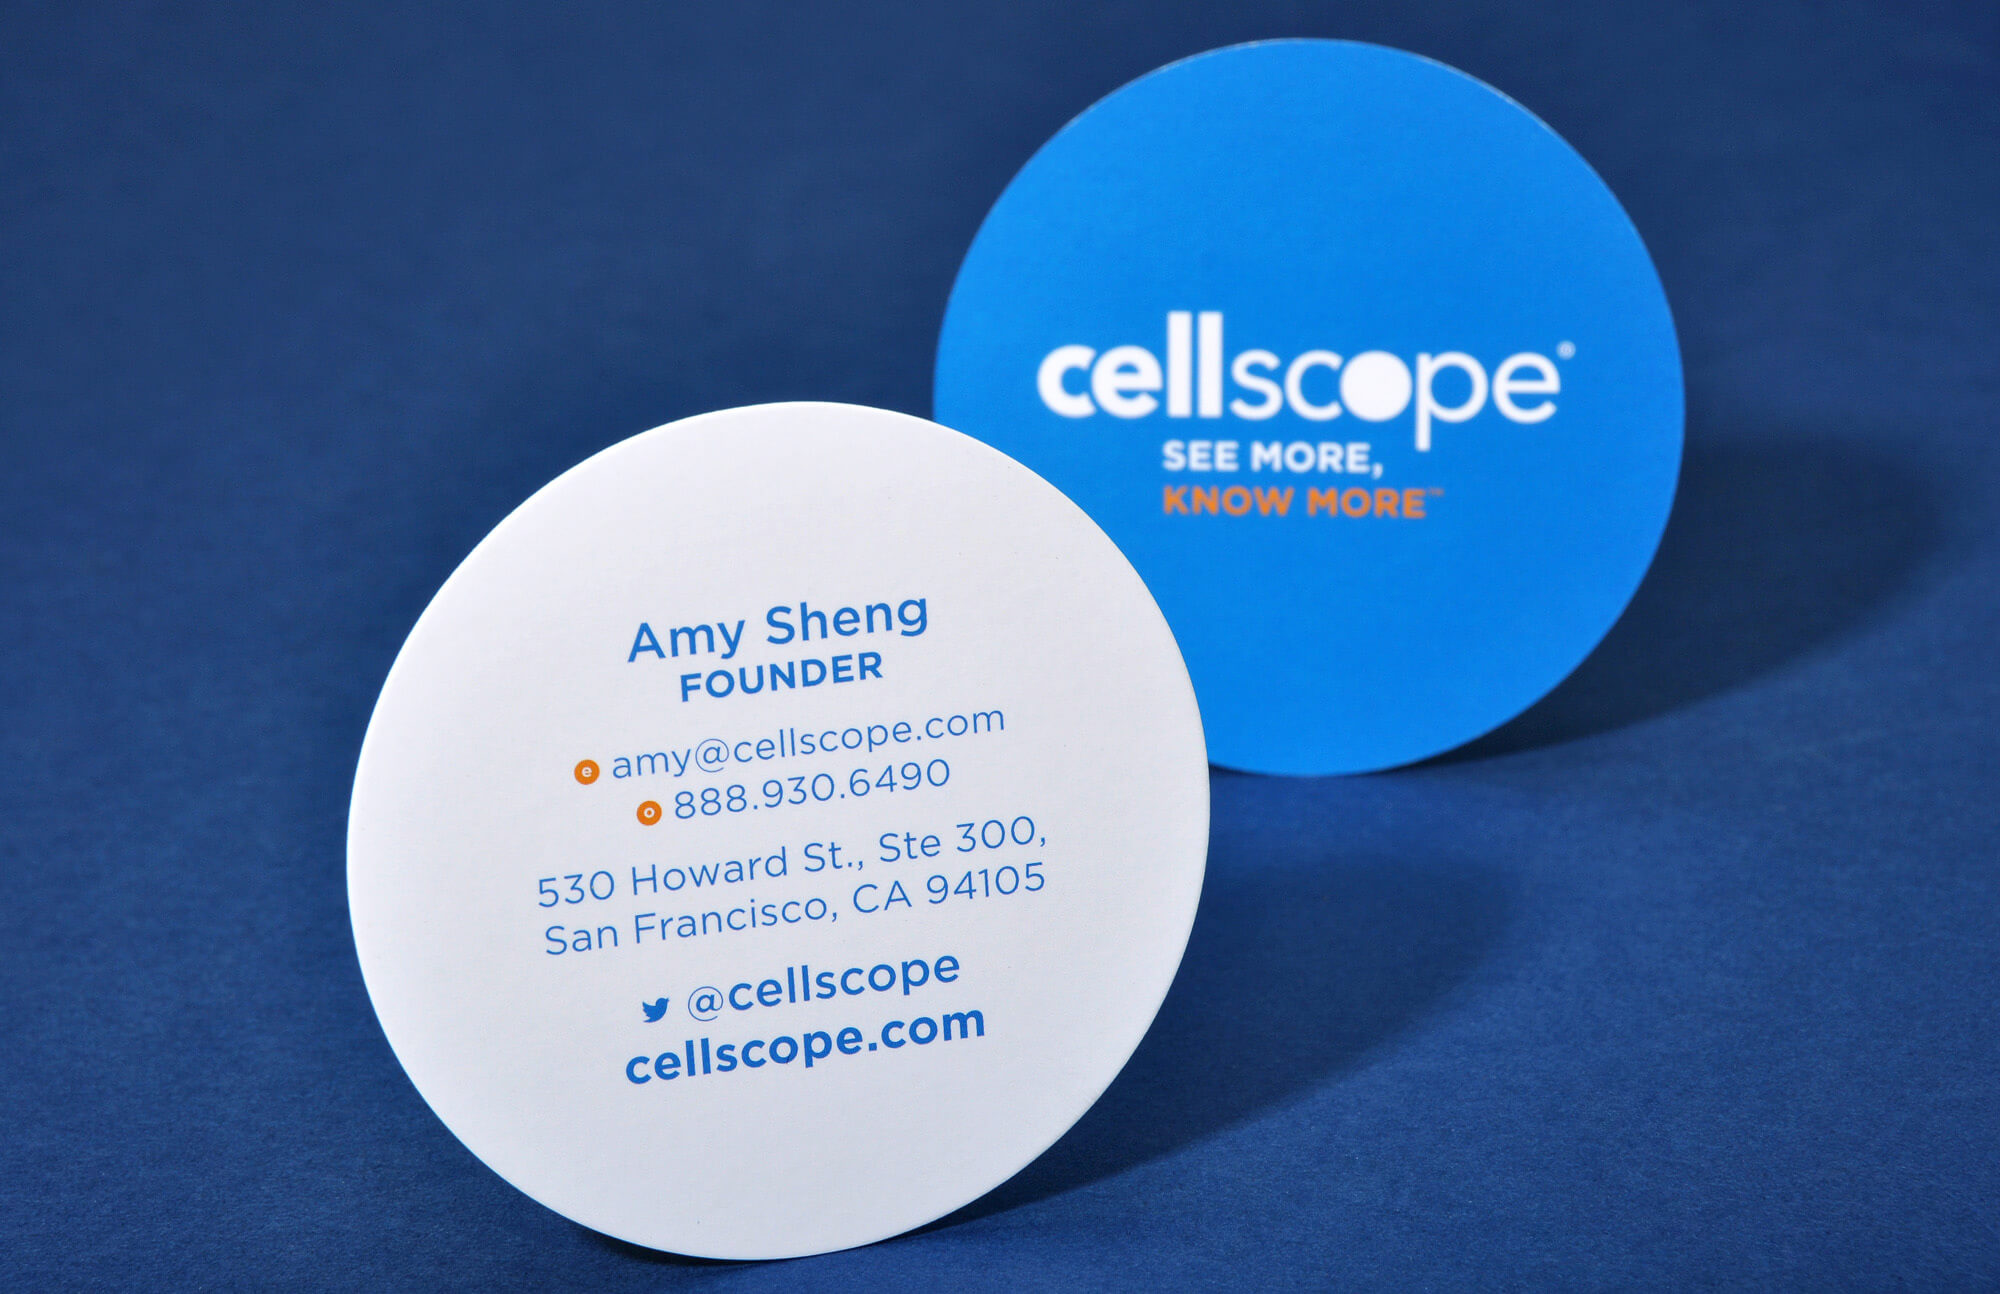 cellscope-businesscards-1